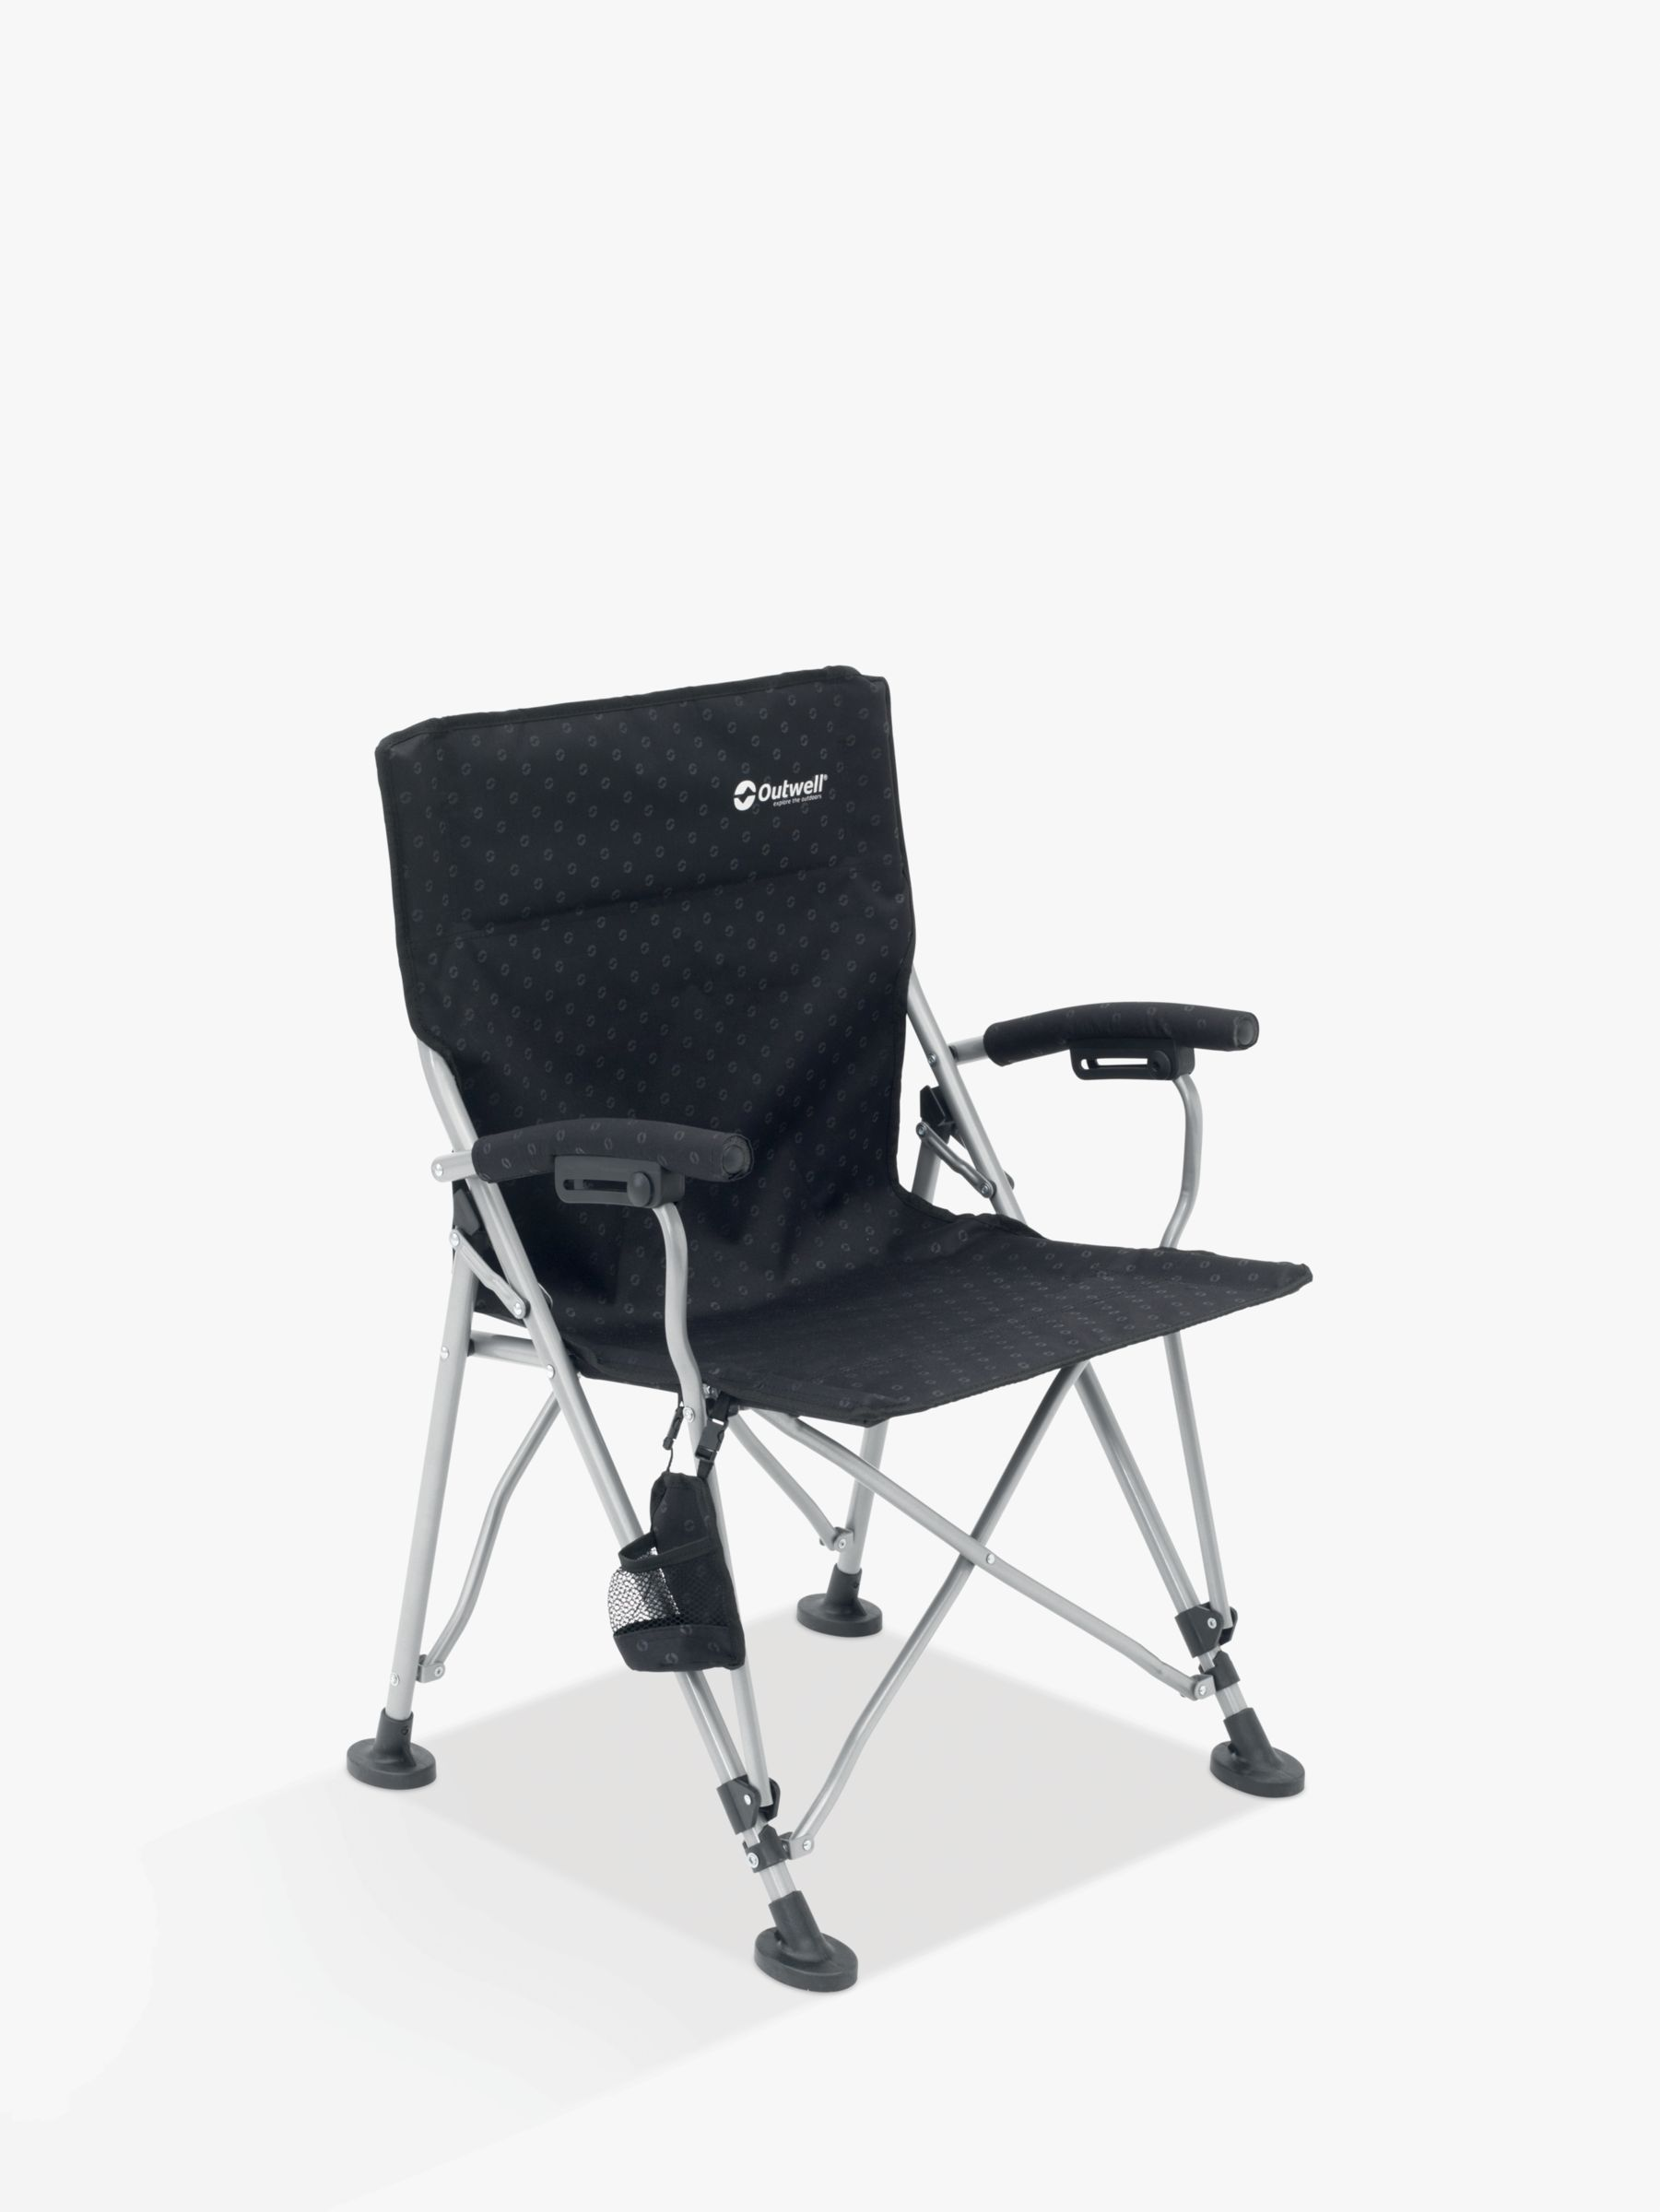 Outwell Outwell Campo Chair, Black